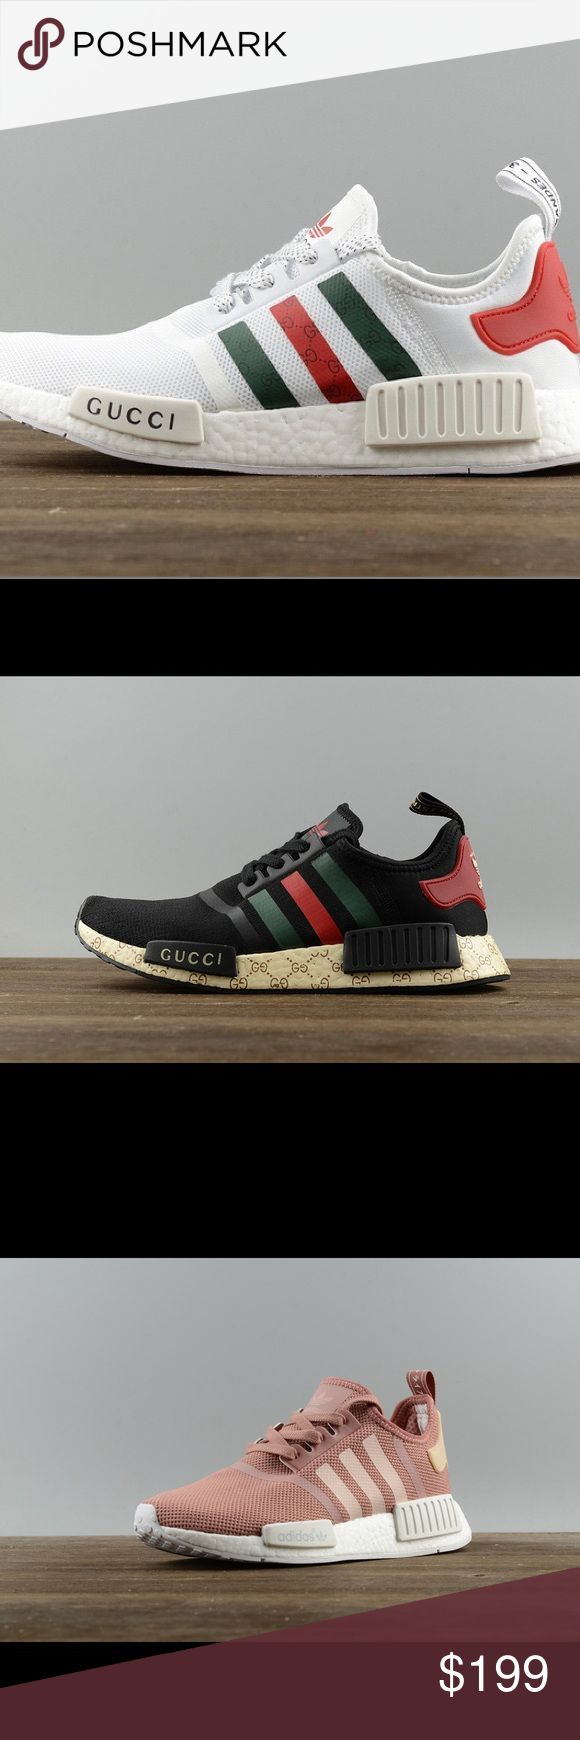 NMD adidas NMD fashion sneaker shoes Gucci New, comes with box.    ————————————————— Men mens womens women nike vans converse adidas puma roshe air max athletic sports white pink black purple evening heel high heeled flat feet leather ankle boots wedge free run shoes sneakers Nike, Jordan, KD, Lebron, Foamposite, SB, Fly, Max adidas Shoes Sneakers